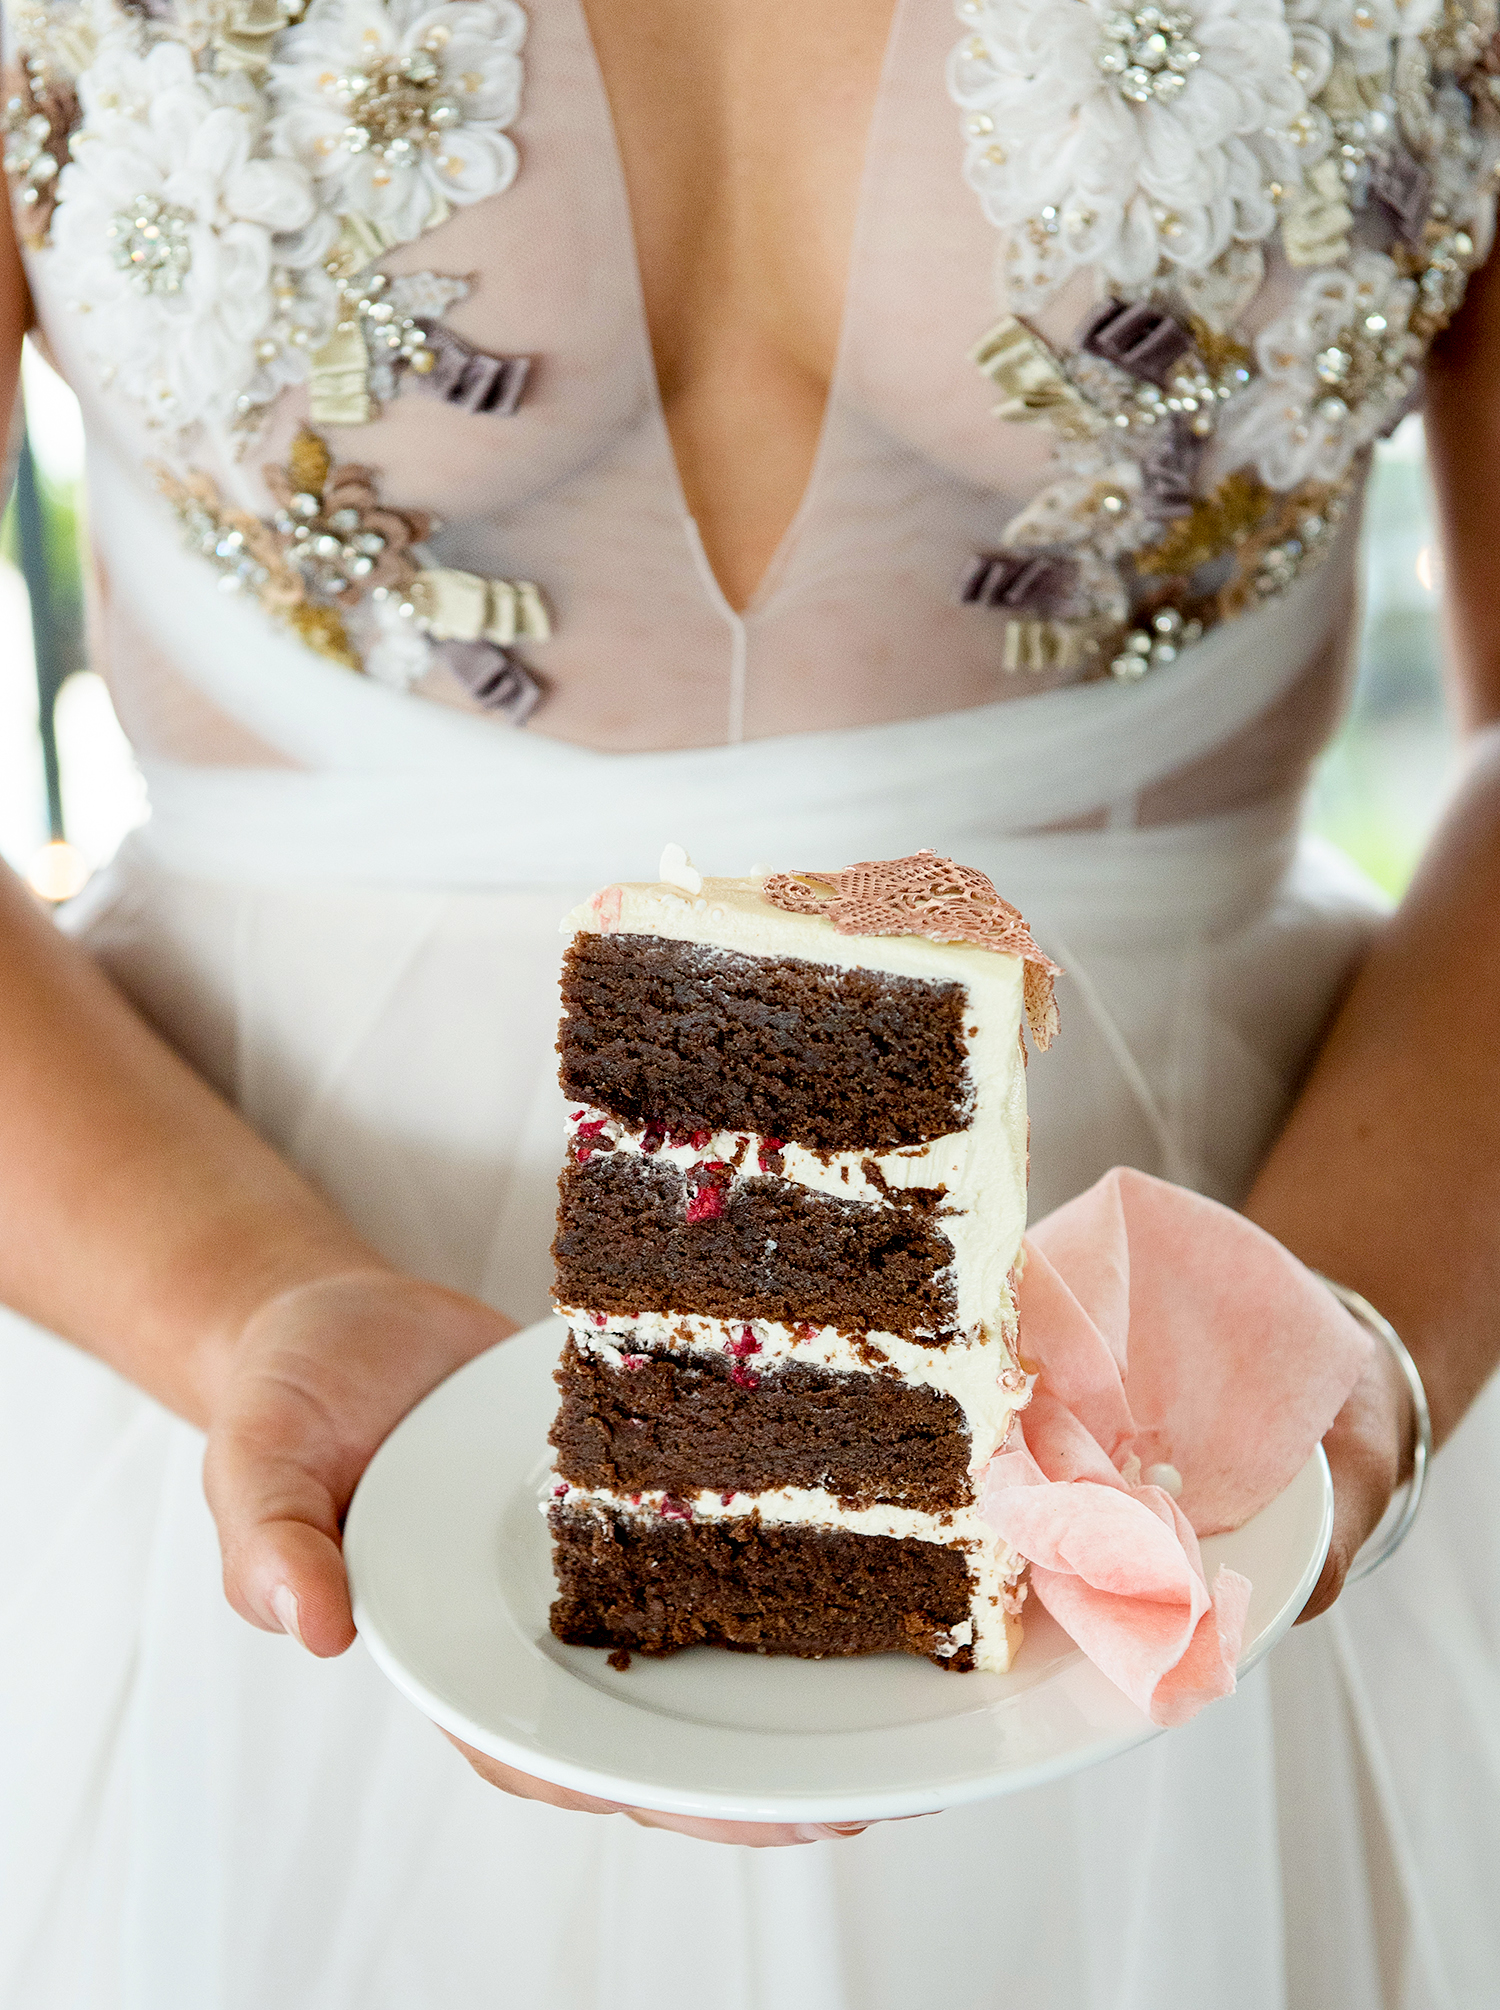 Venue: South Bank Beergarden Stylist/Coordinator: Blushing Events Photographer: Nicole Barralet Photography @nicolebarraletphoto Models: Taytum & Kirra Green Cake: Confetti Cake Co. Gowns: White By Gossip Gowns